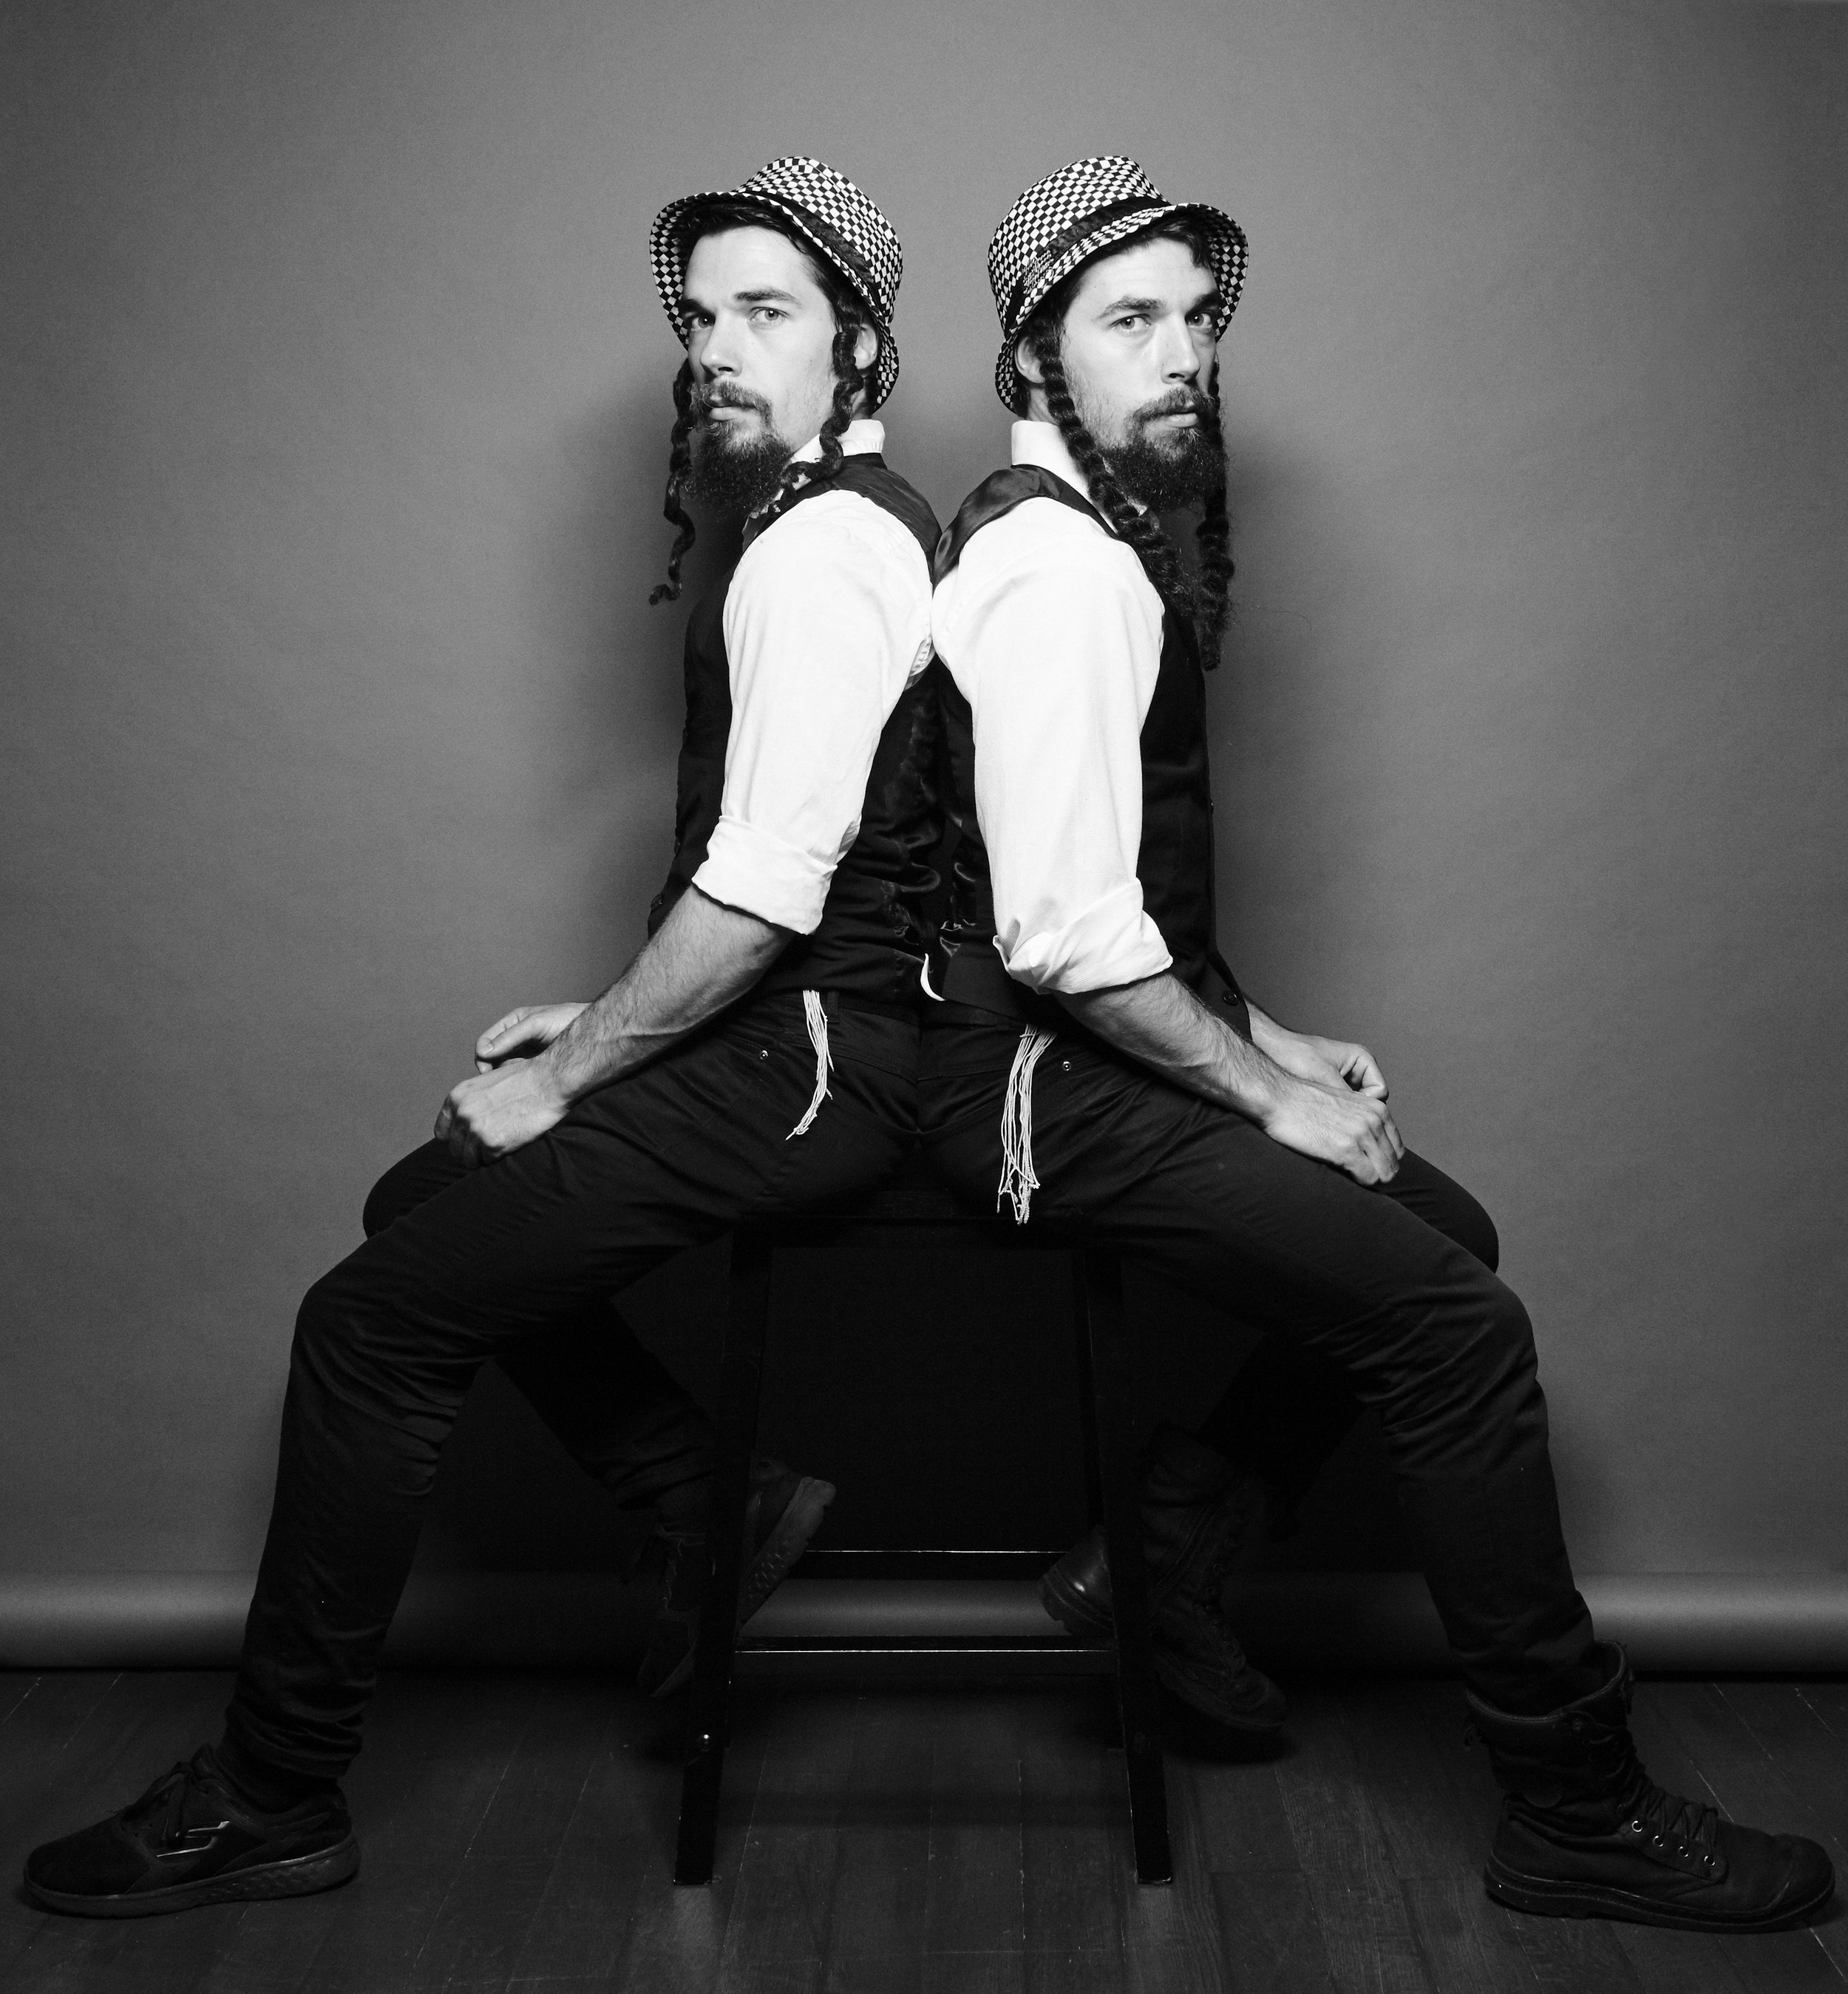 THE TWINS FROM FRANCE, ACROBATIC COMEDIANS